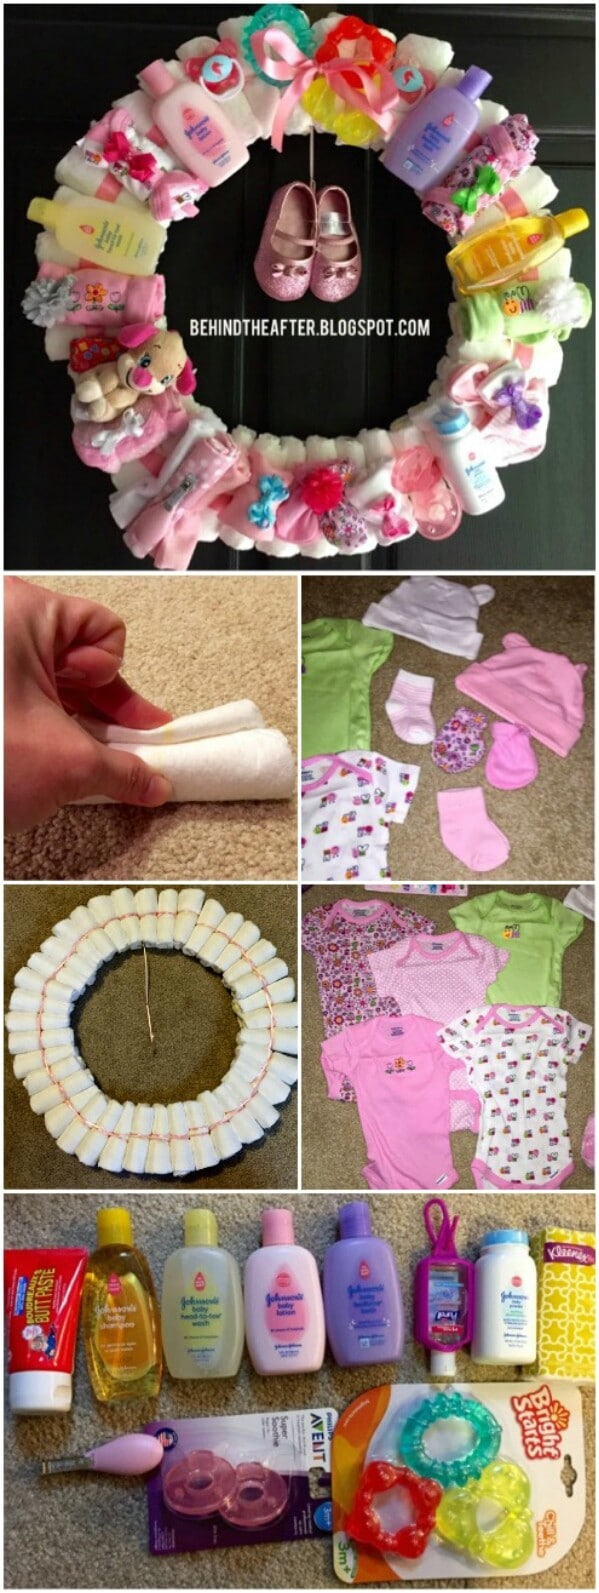 25 Enchantingly Adorable Baby Shower Gift Ideas That Will